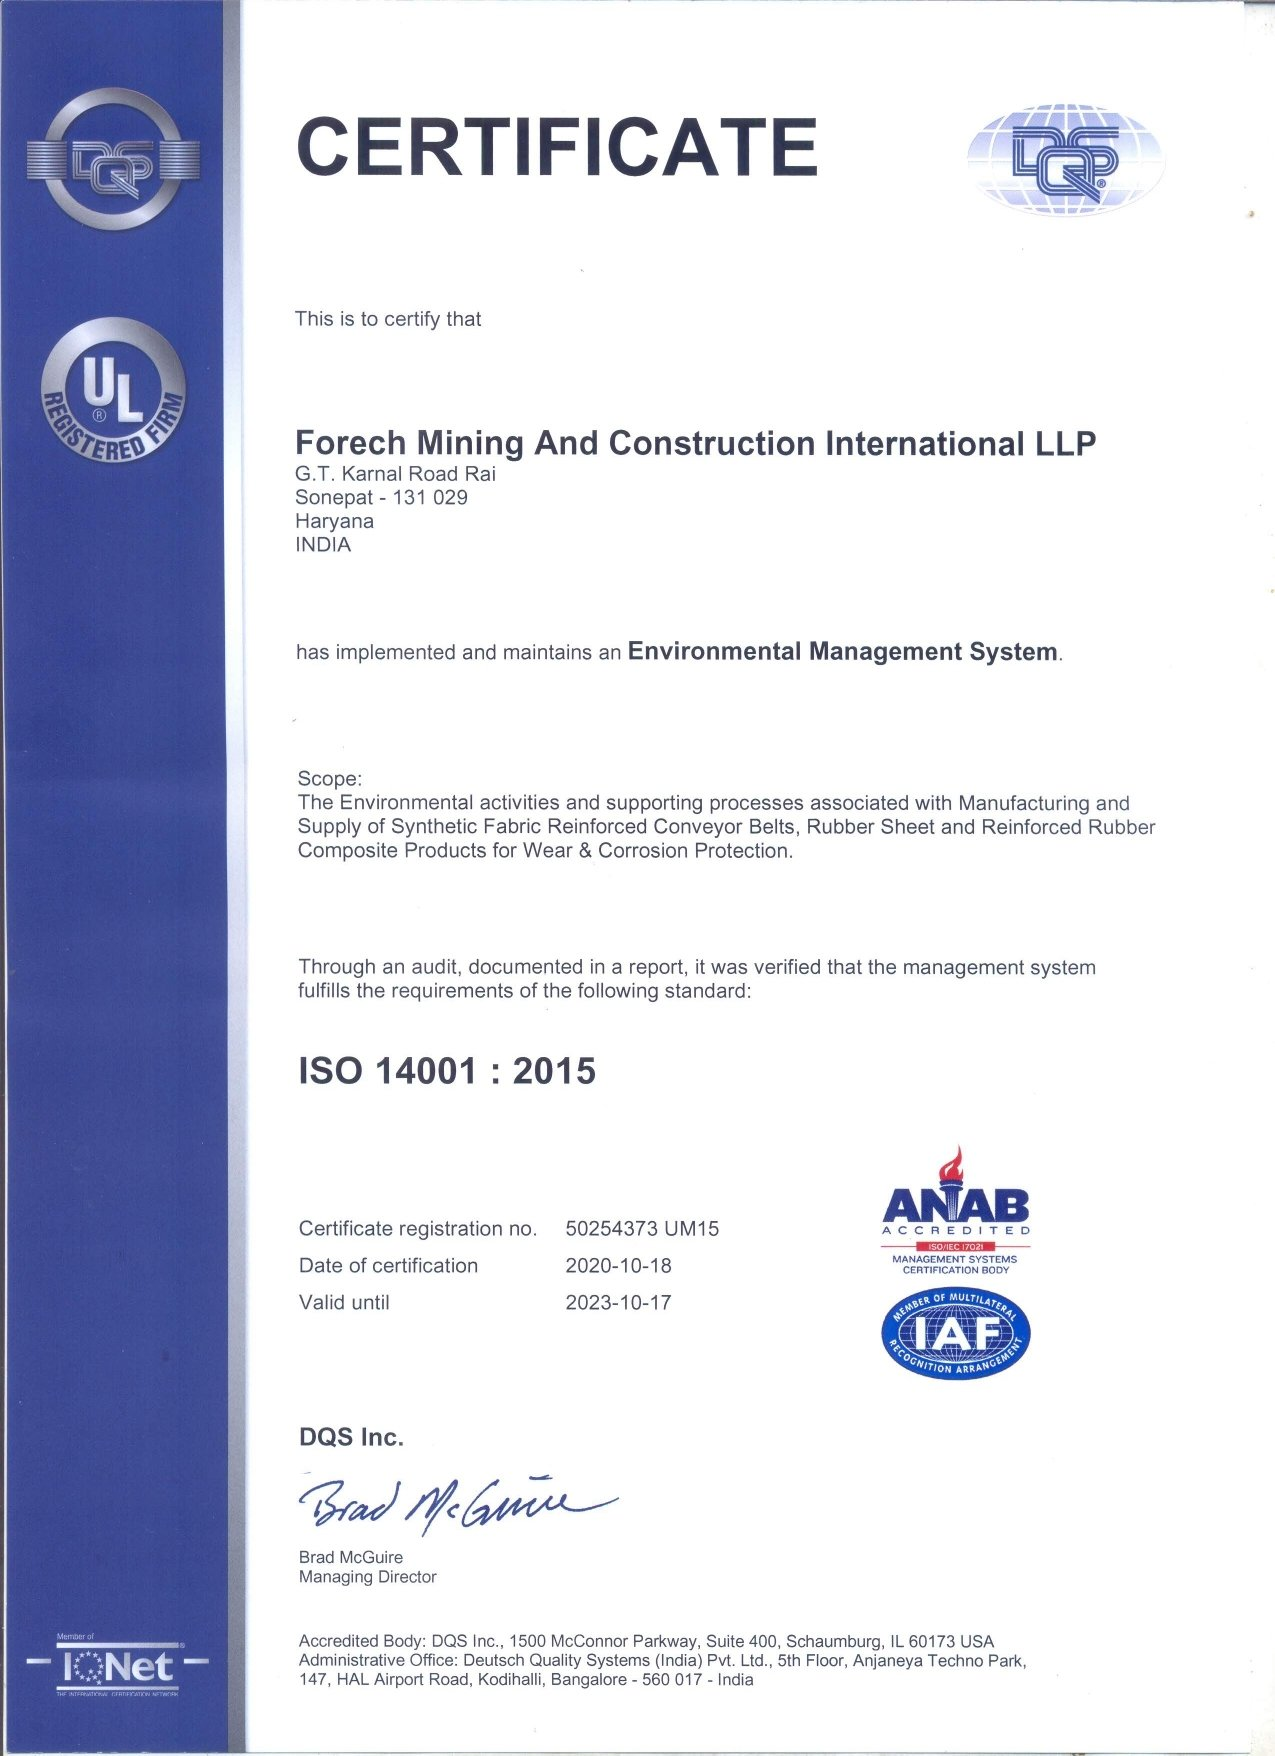 Scan of ISO 14001:2015 - FMCI certificate